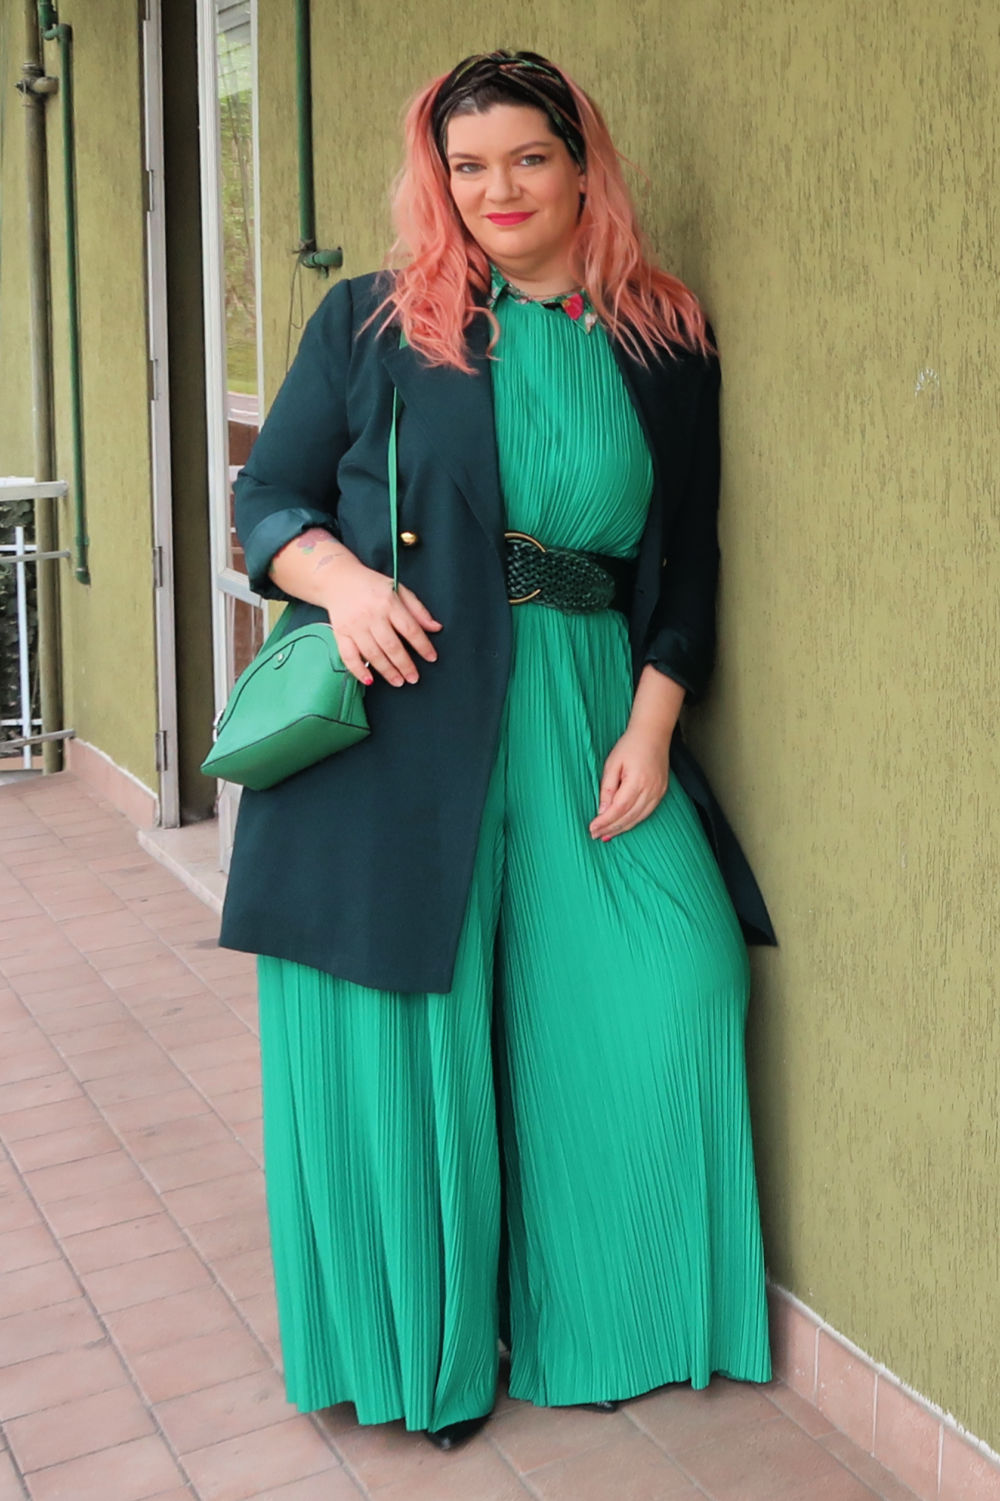 Verde, outfit plus size, curvycolorchallenge , come indossarlo (4)